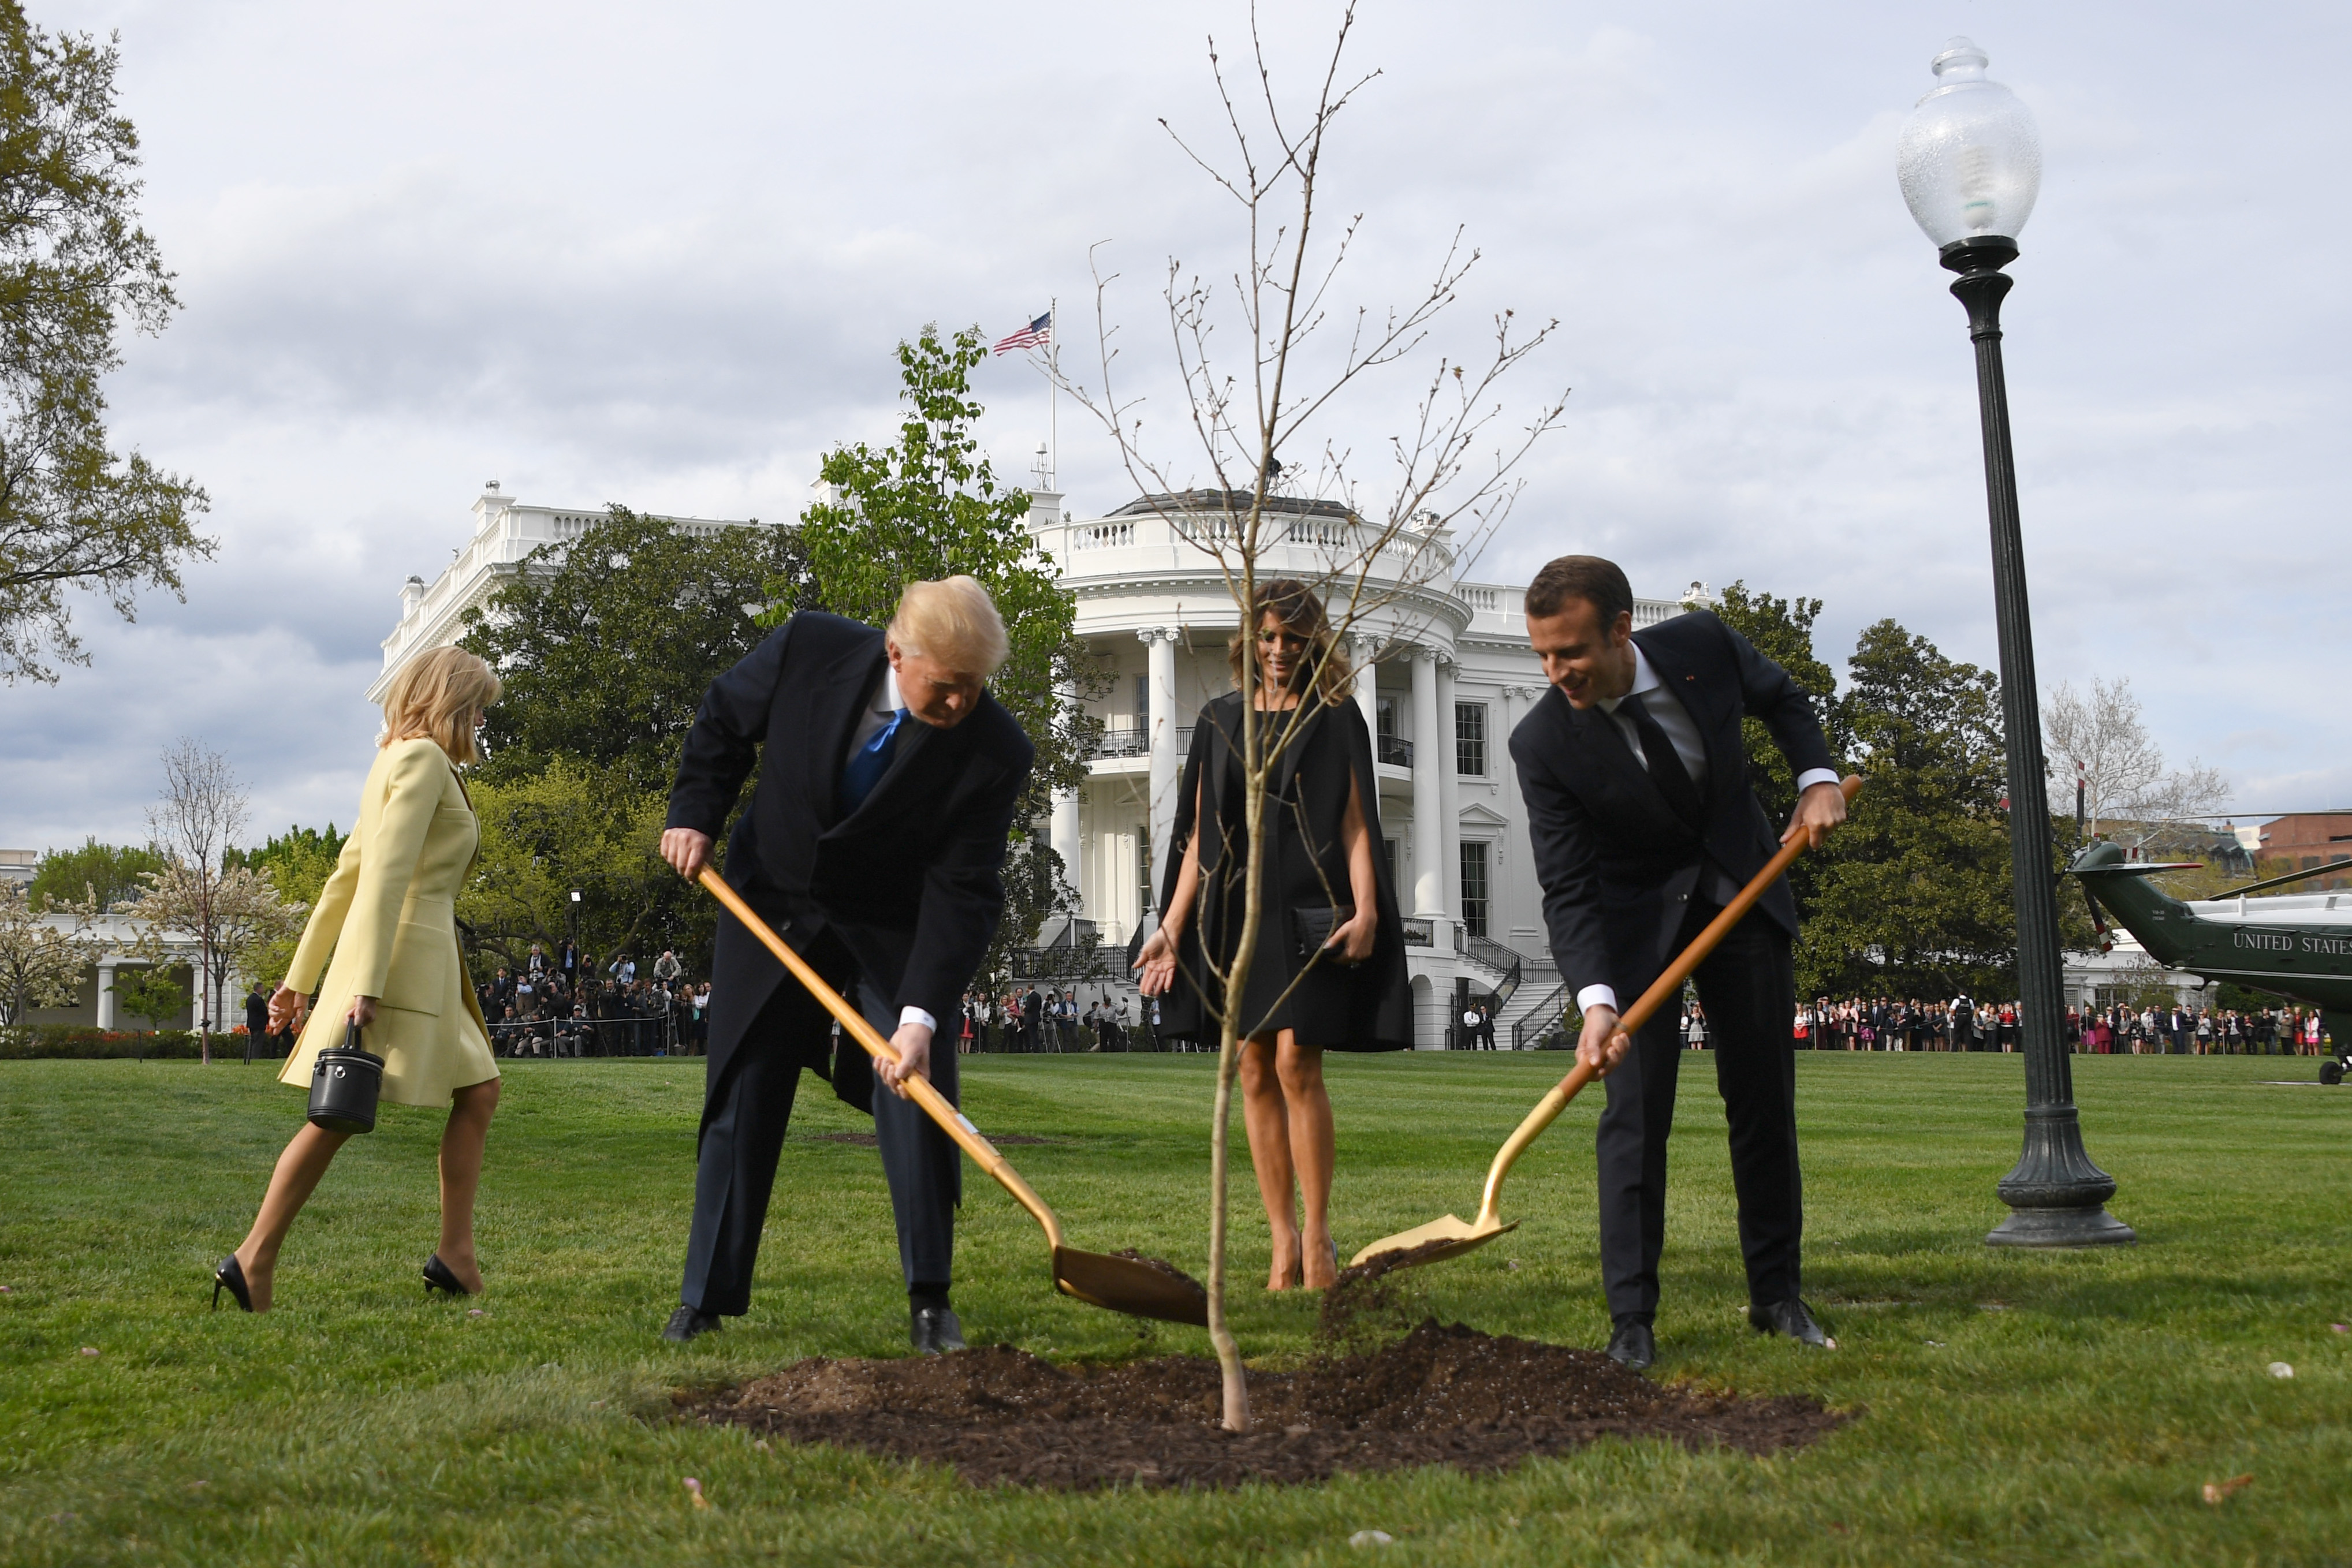 President Donald Trump and French President Emmanuel Macron plant a tree on the South lawn of the White House.